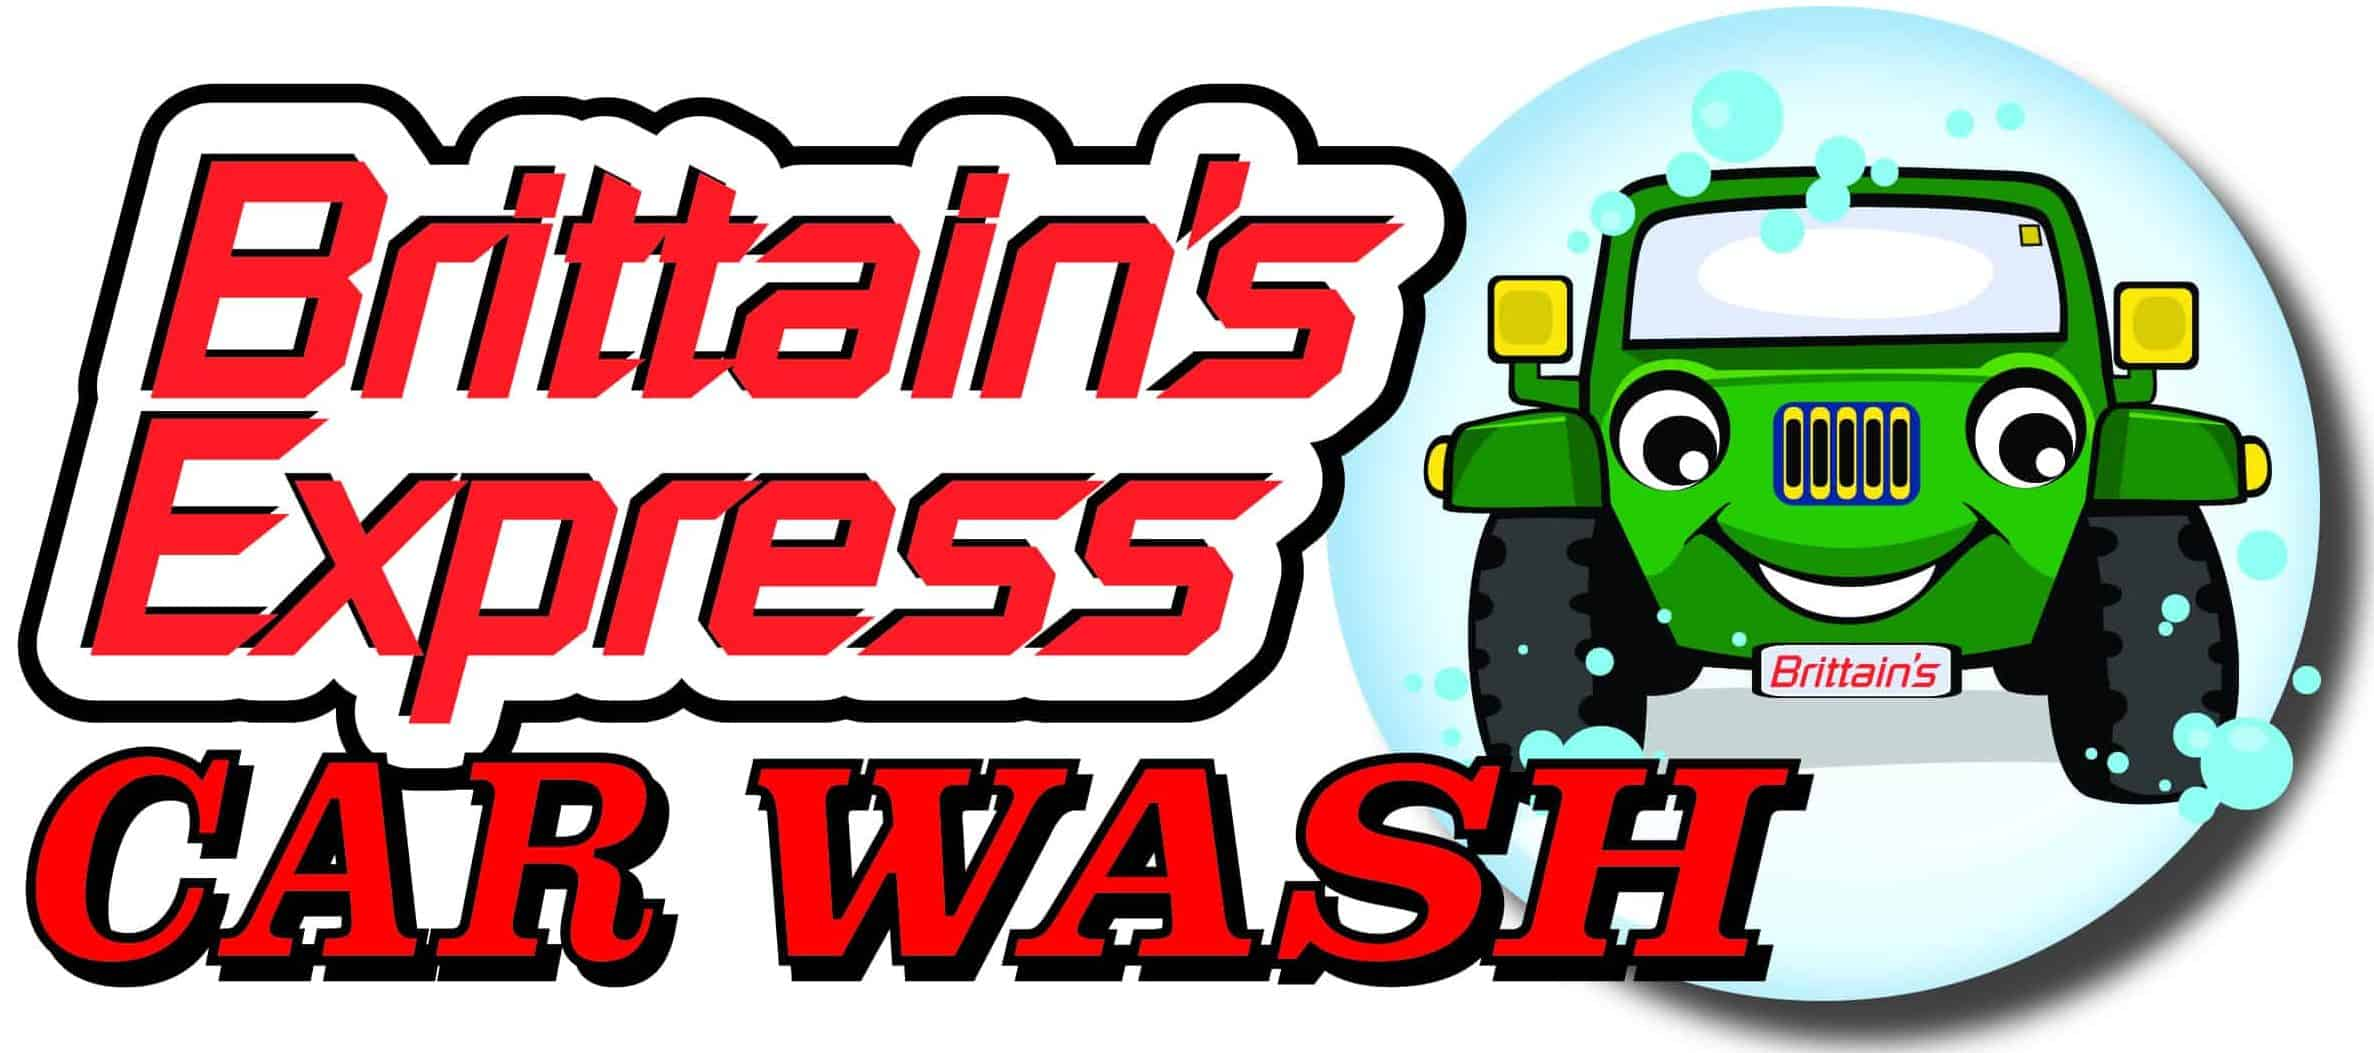 Brittains' Express Car Wash